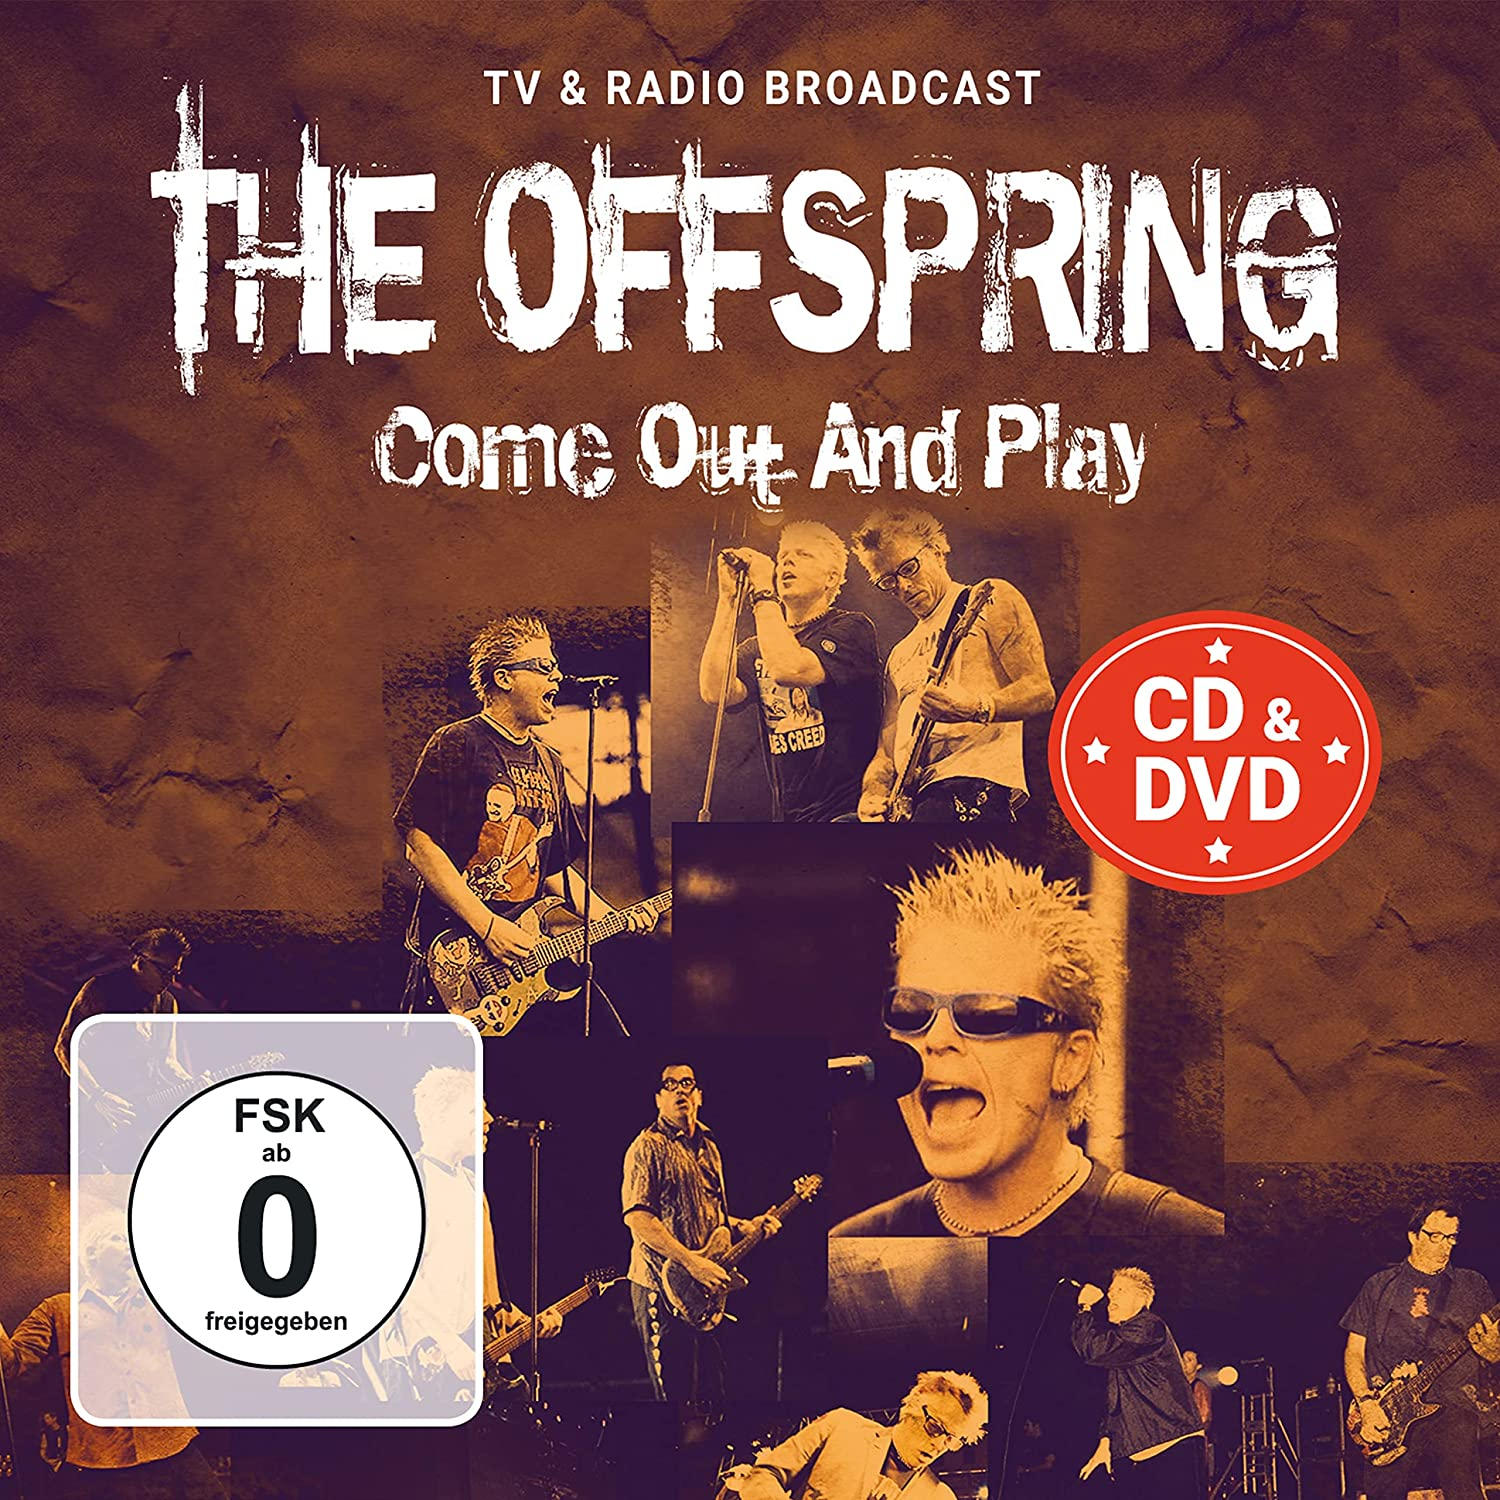 OFFSPRING - COME OUT AND PLAY: RADIO & TV BROADCAST (CD+DVD) (2